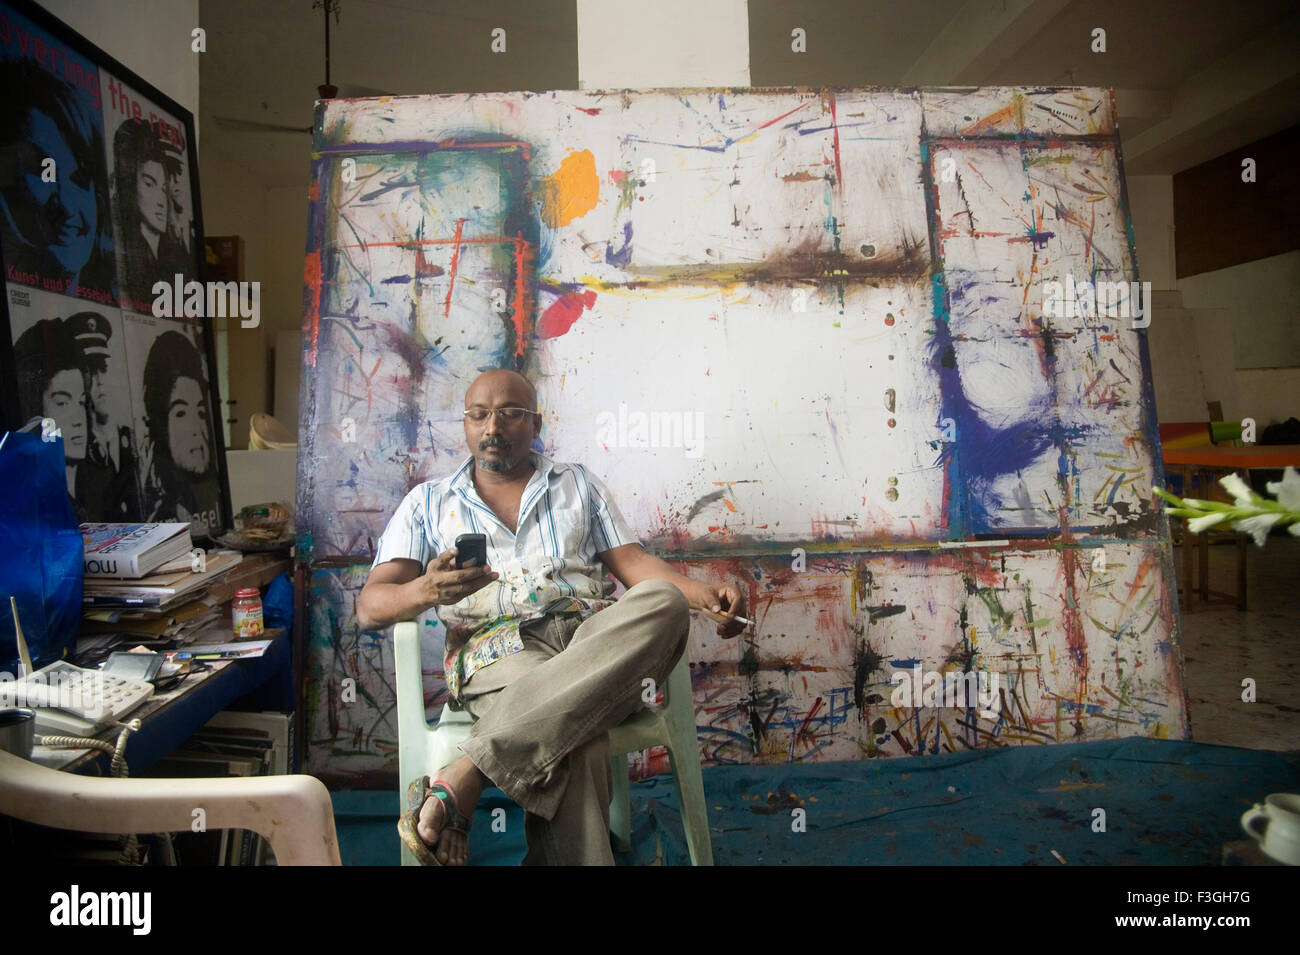 Contemporary South Asian Indian Artist Bose Krishnamachari Painting Stock Photo Alamy